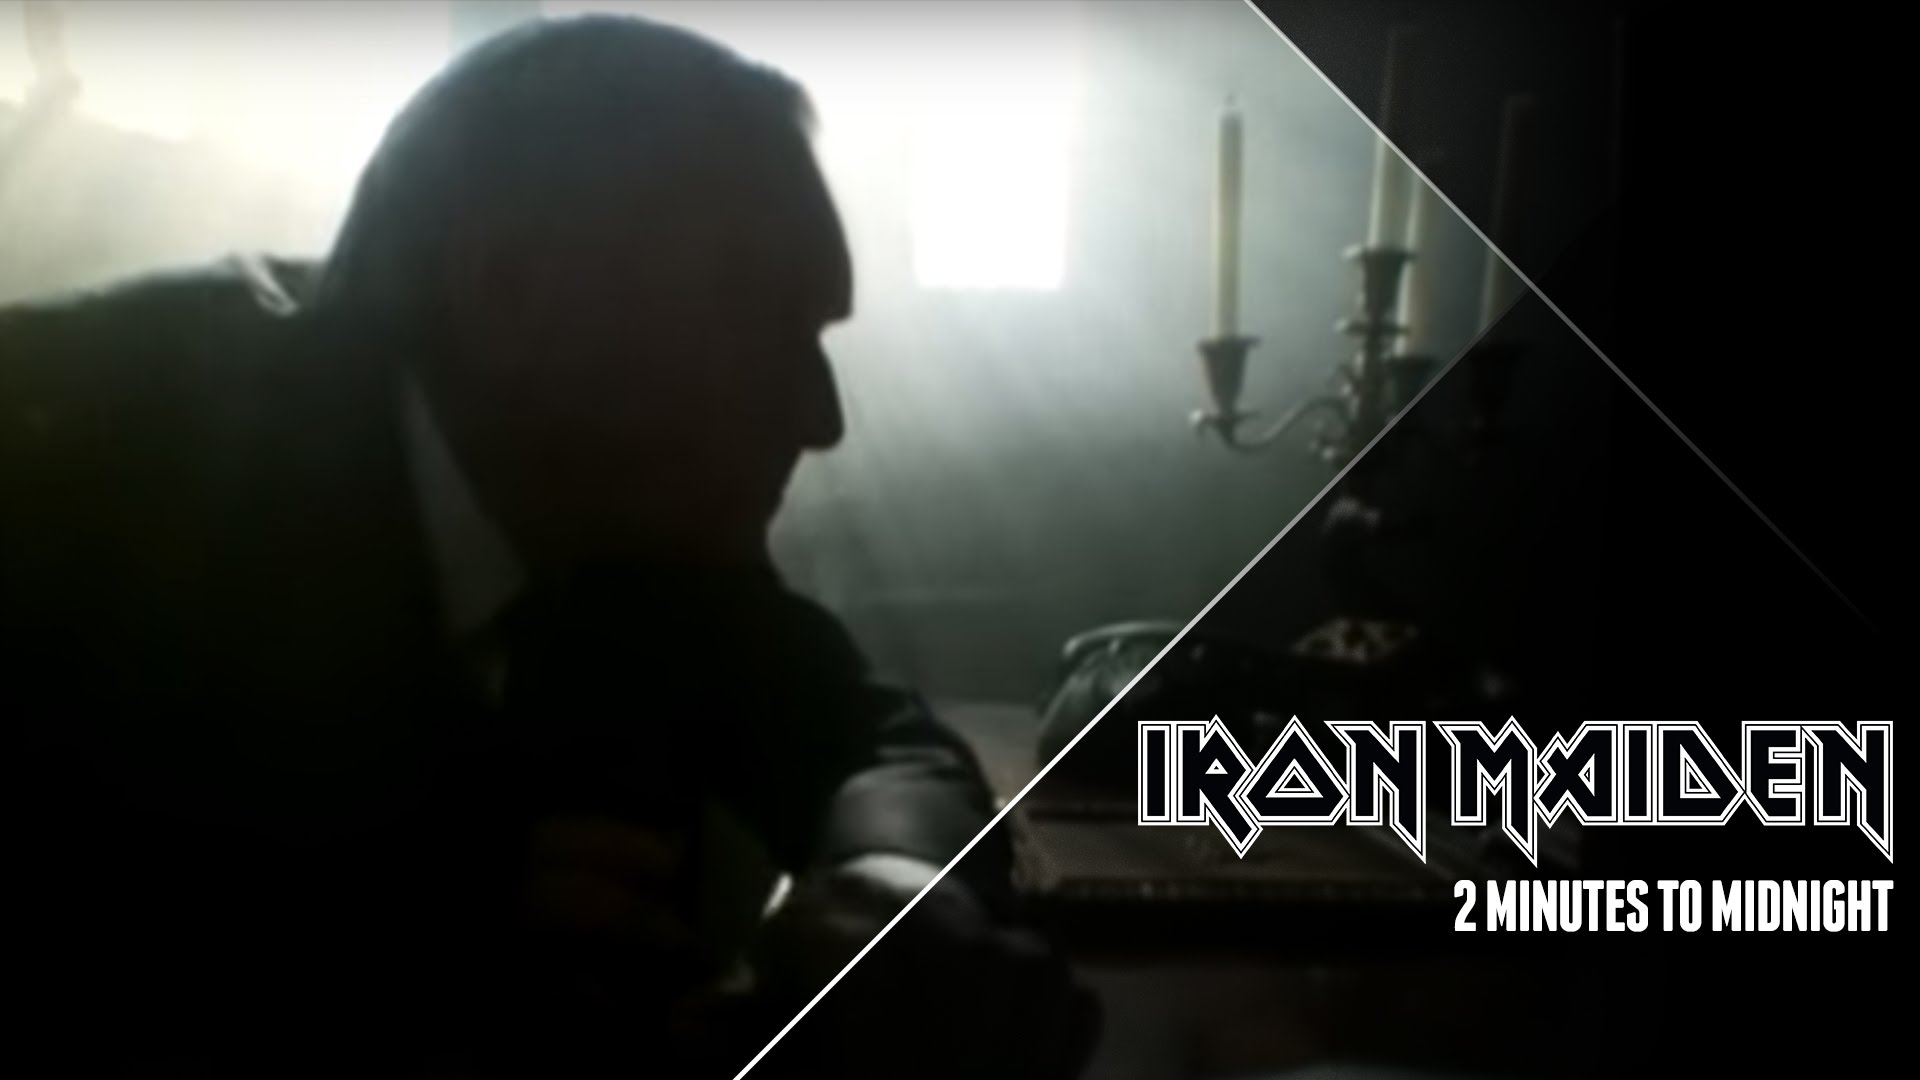 Farmer Phil's Festival news: Iron Maiden – 2 Minutes To Midnight (Official Video)